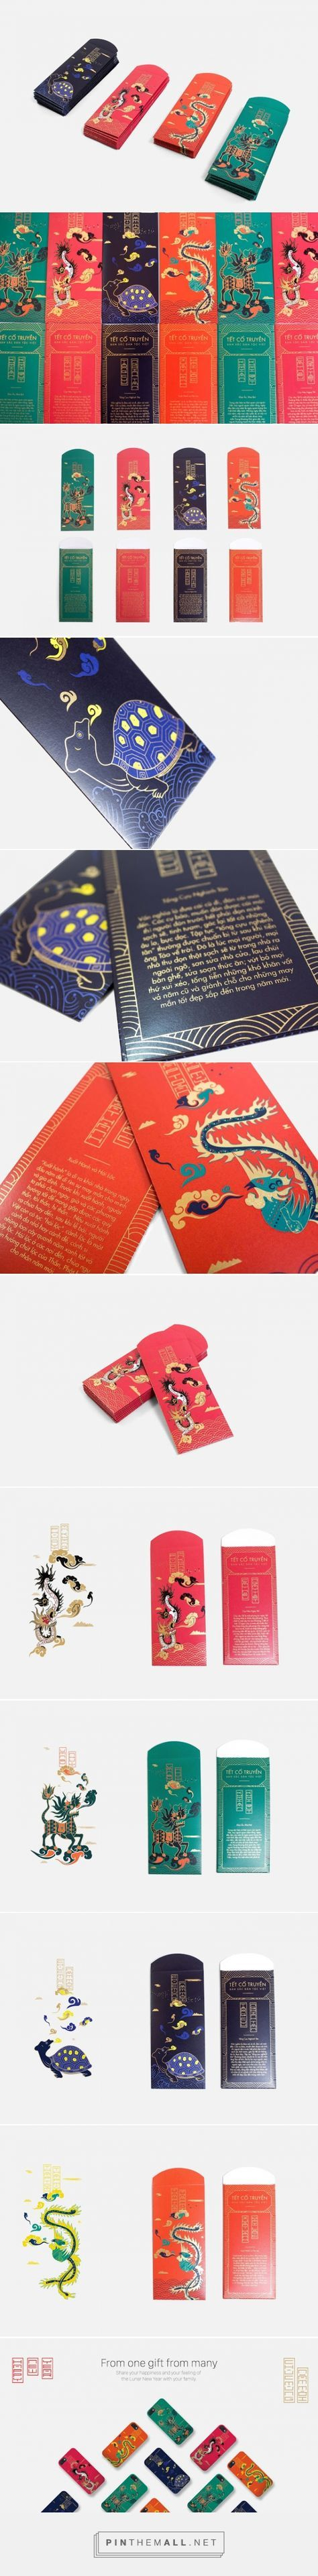 Red Envelope for Lunar New Year